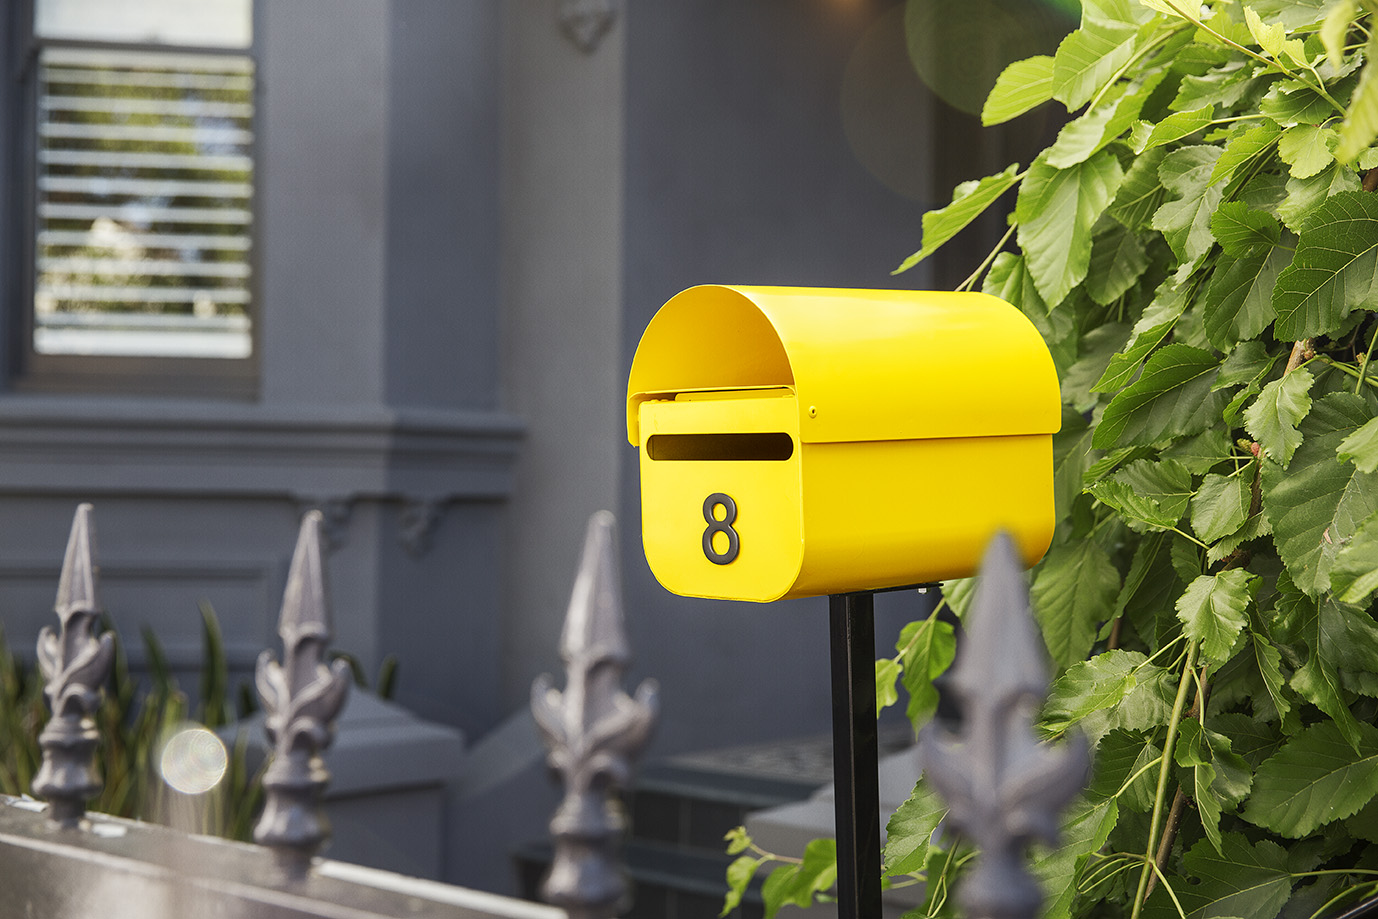 Letterbox image - Ray White_Know How - Landscape - Low res